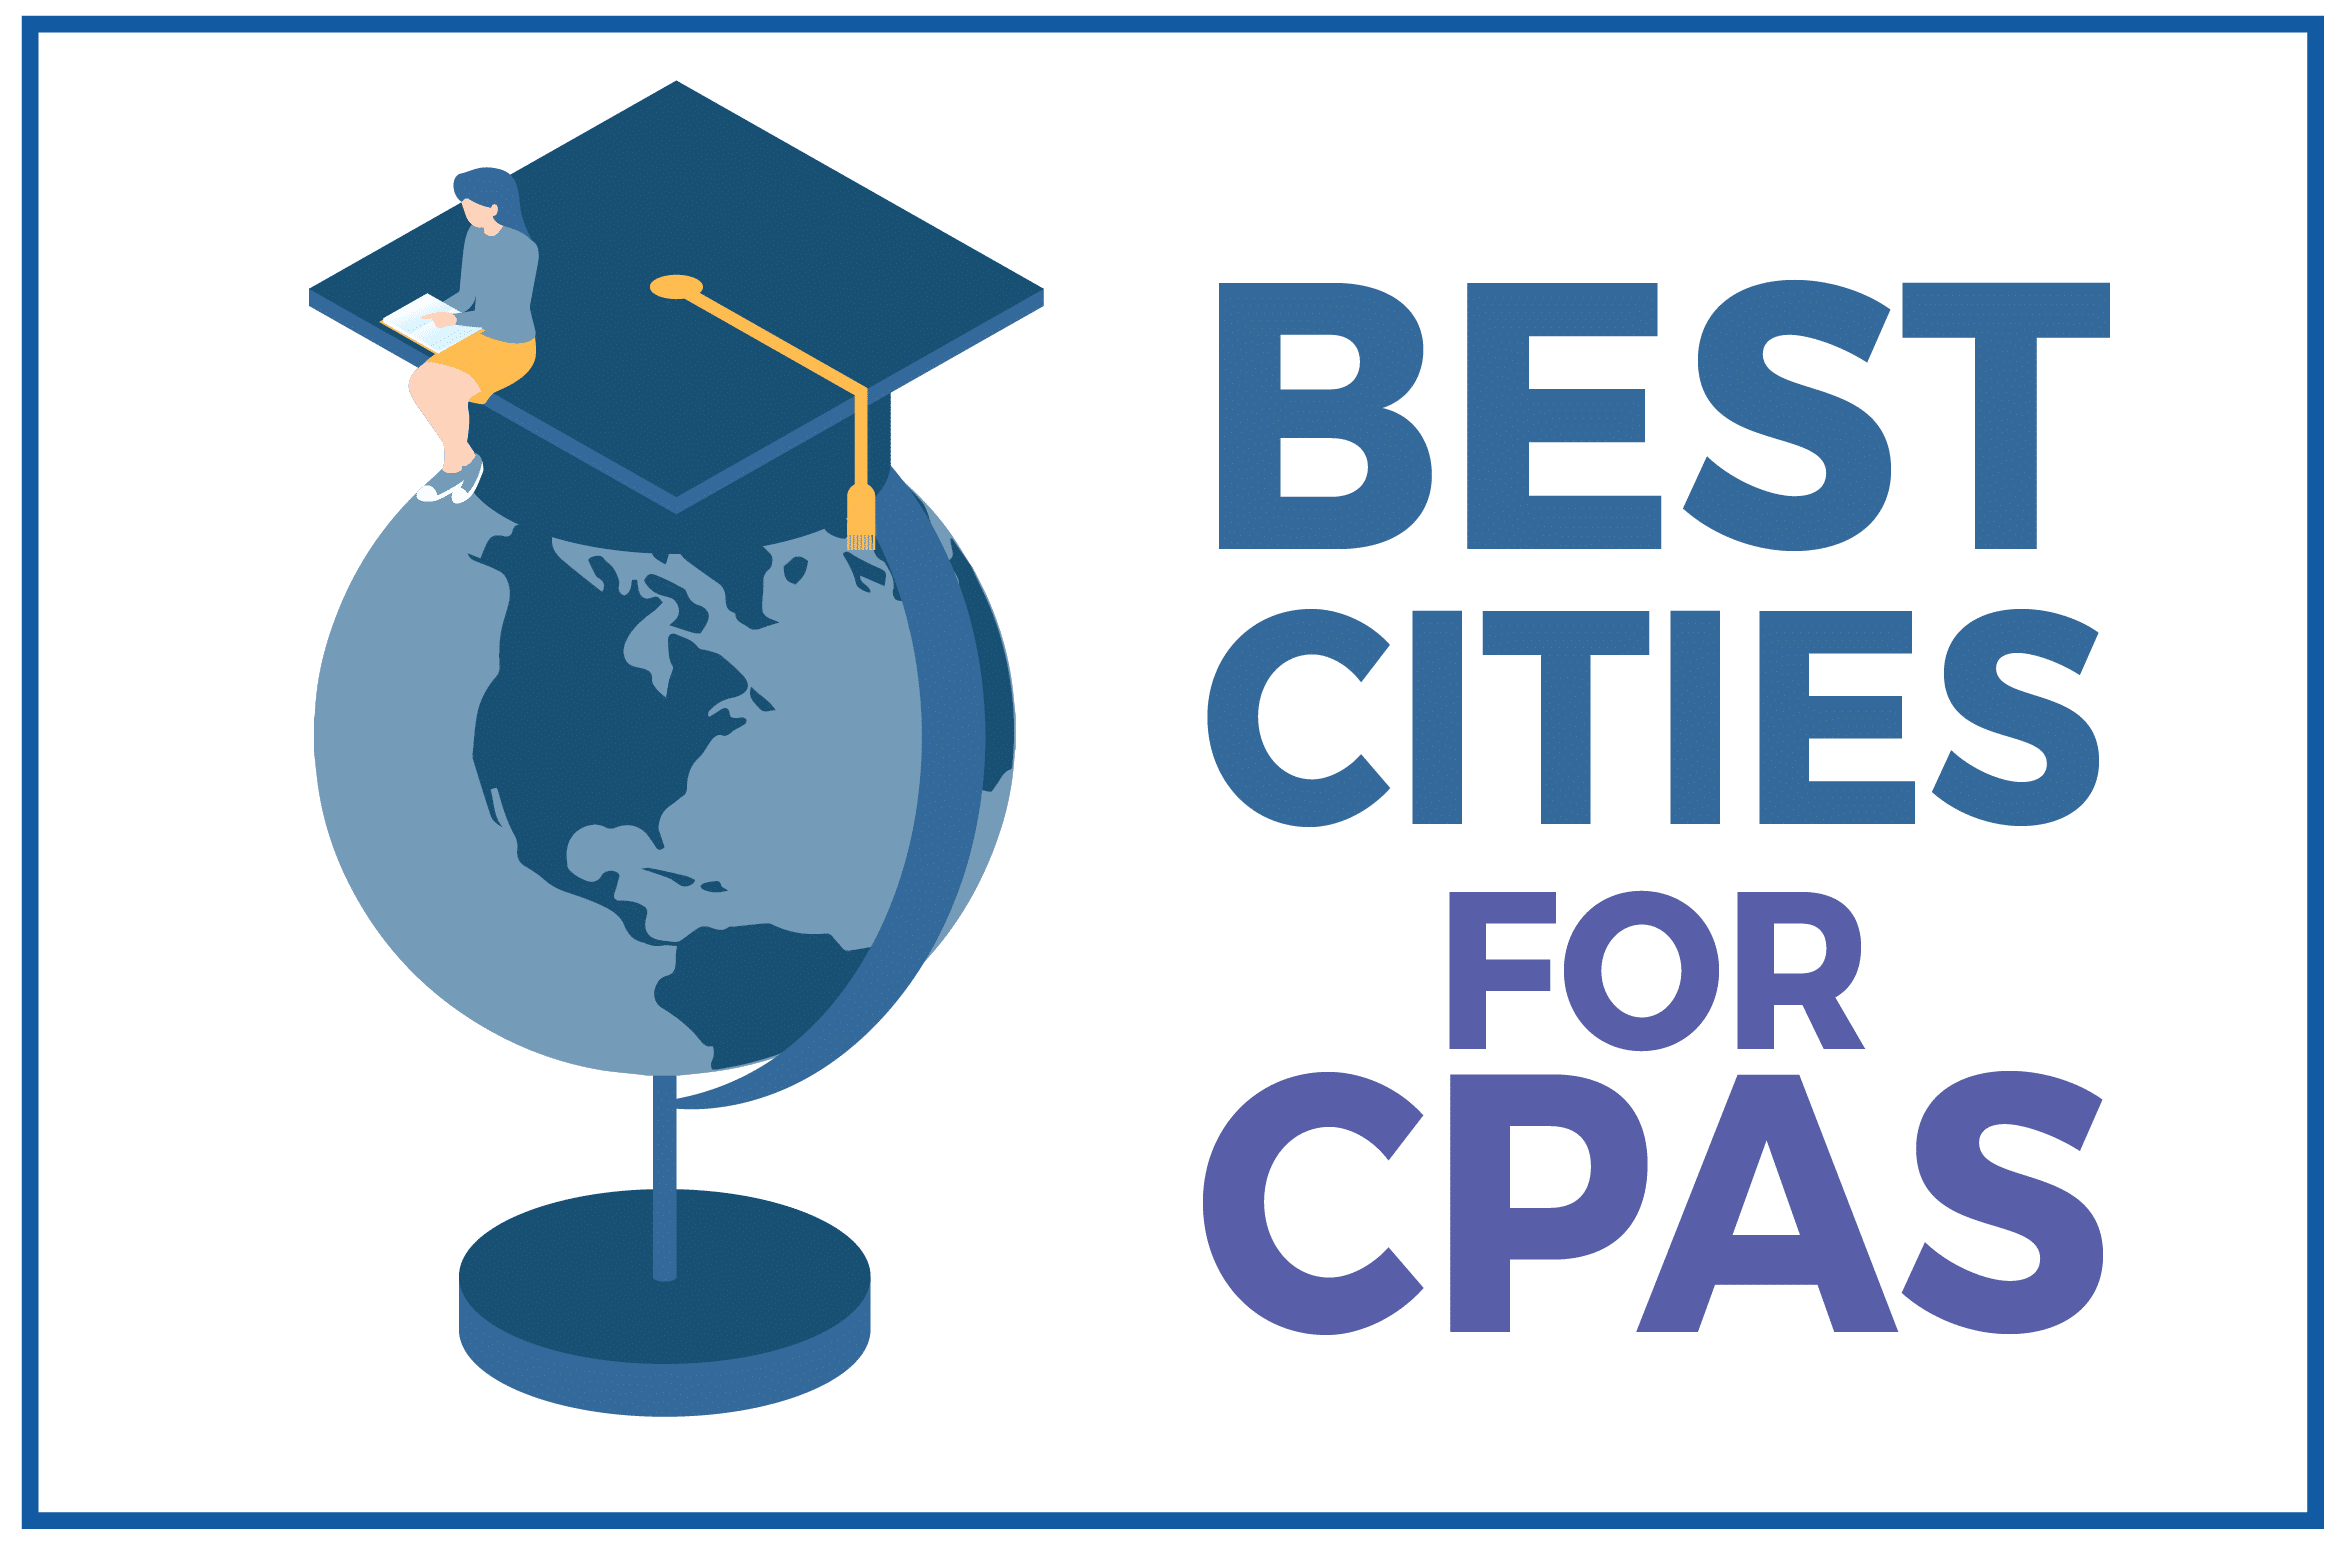 Best Cities for CPAs